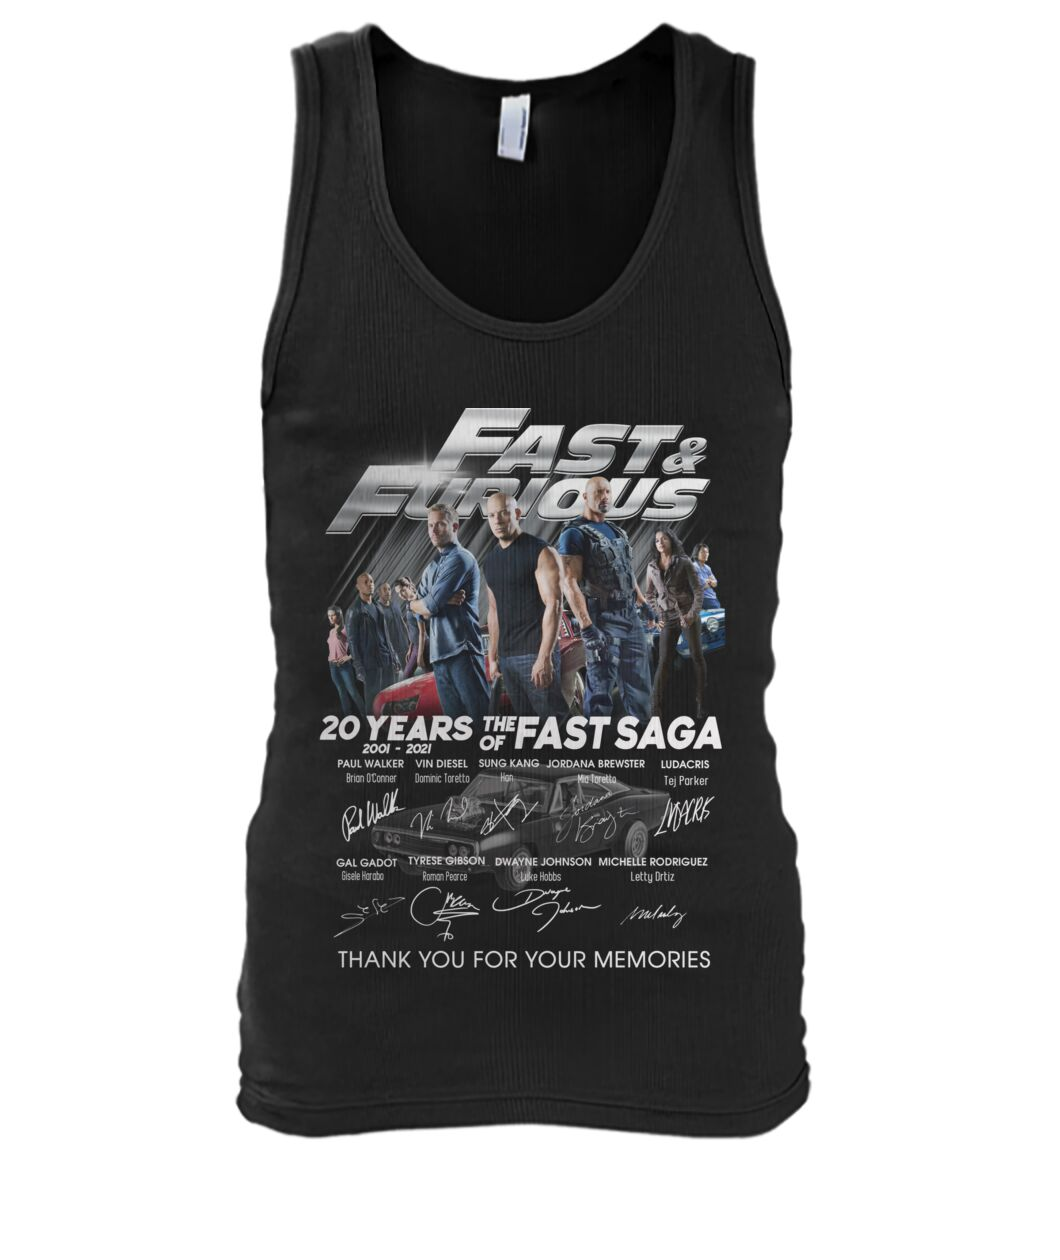 Fast and furious 20 years of the fast saga signature tank top